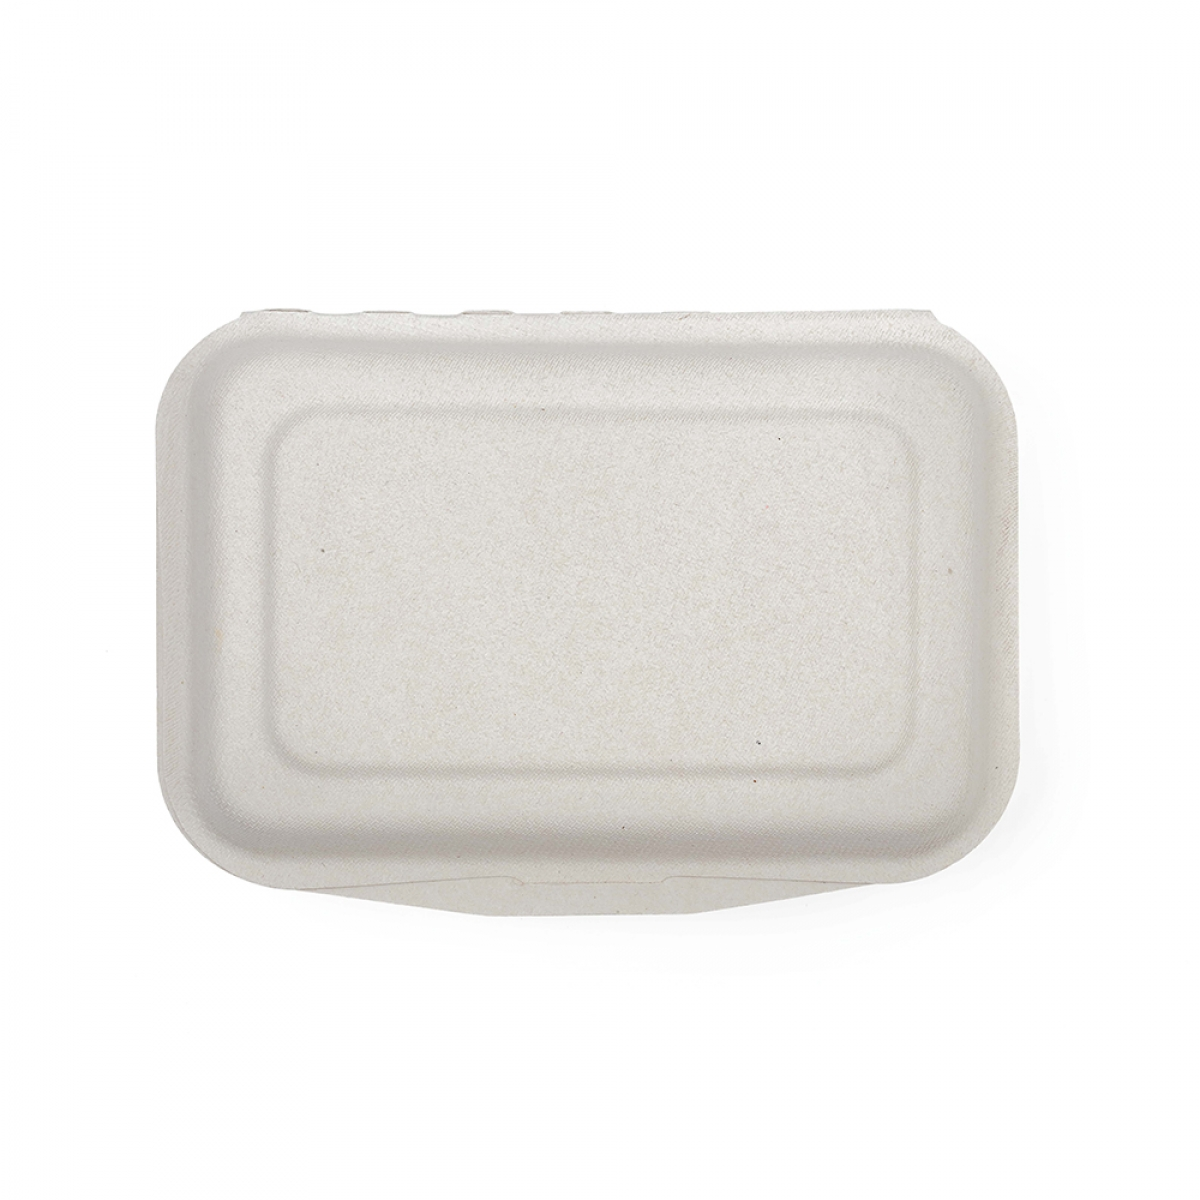 carton tray (white) 23*16